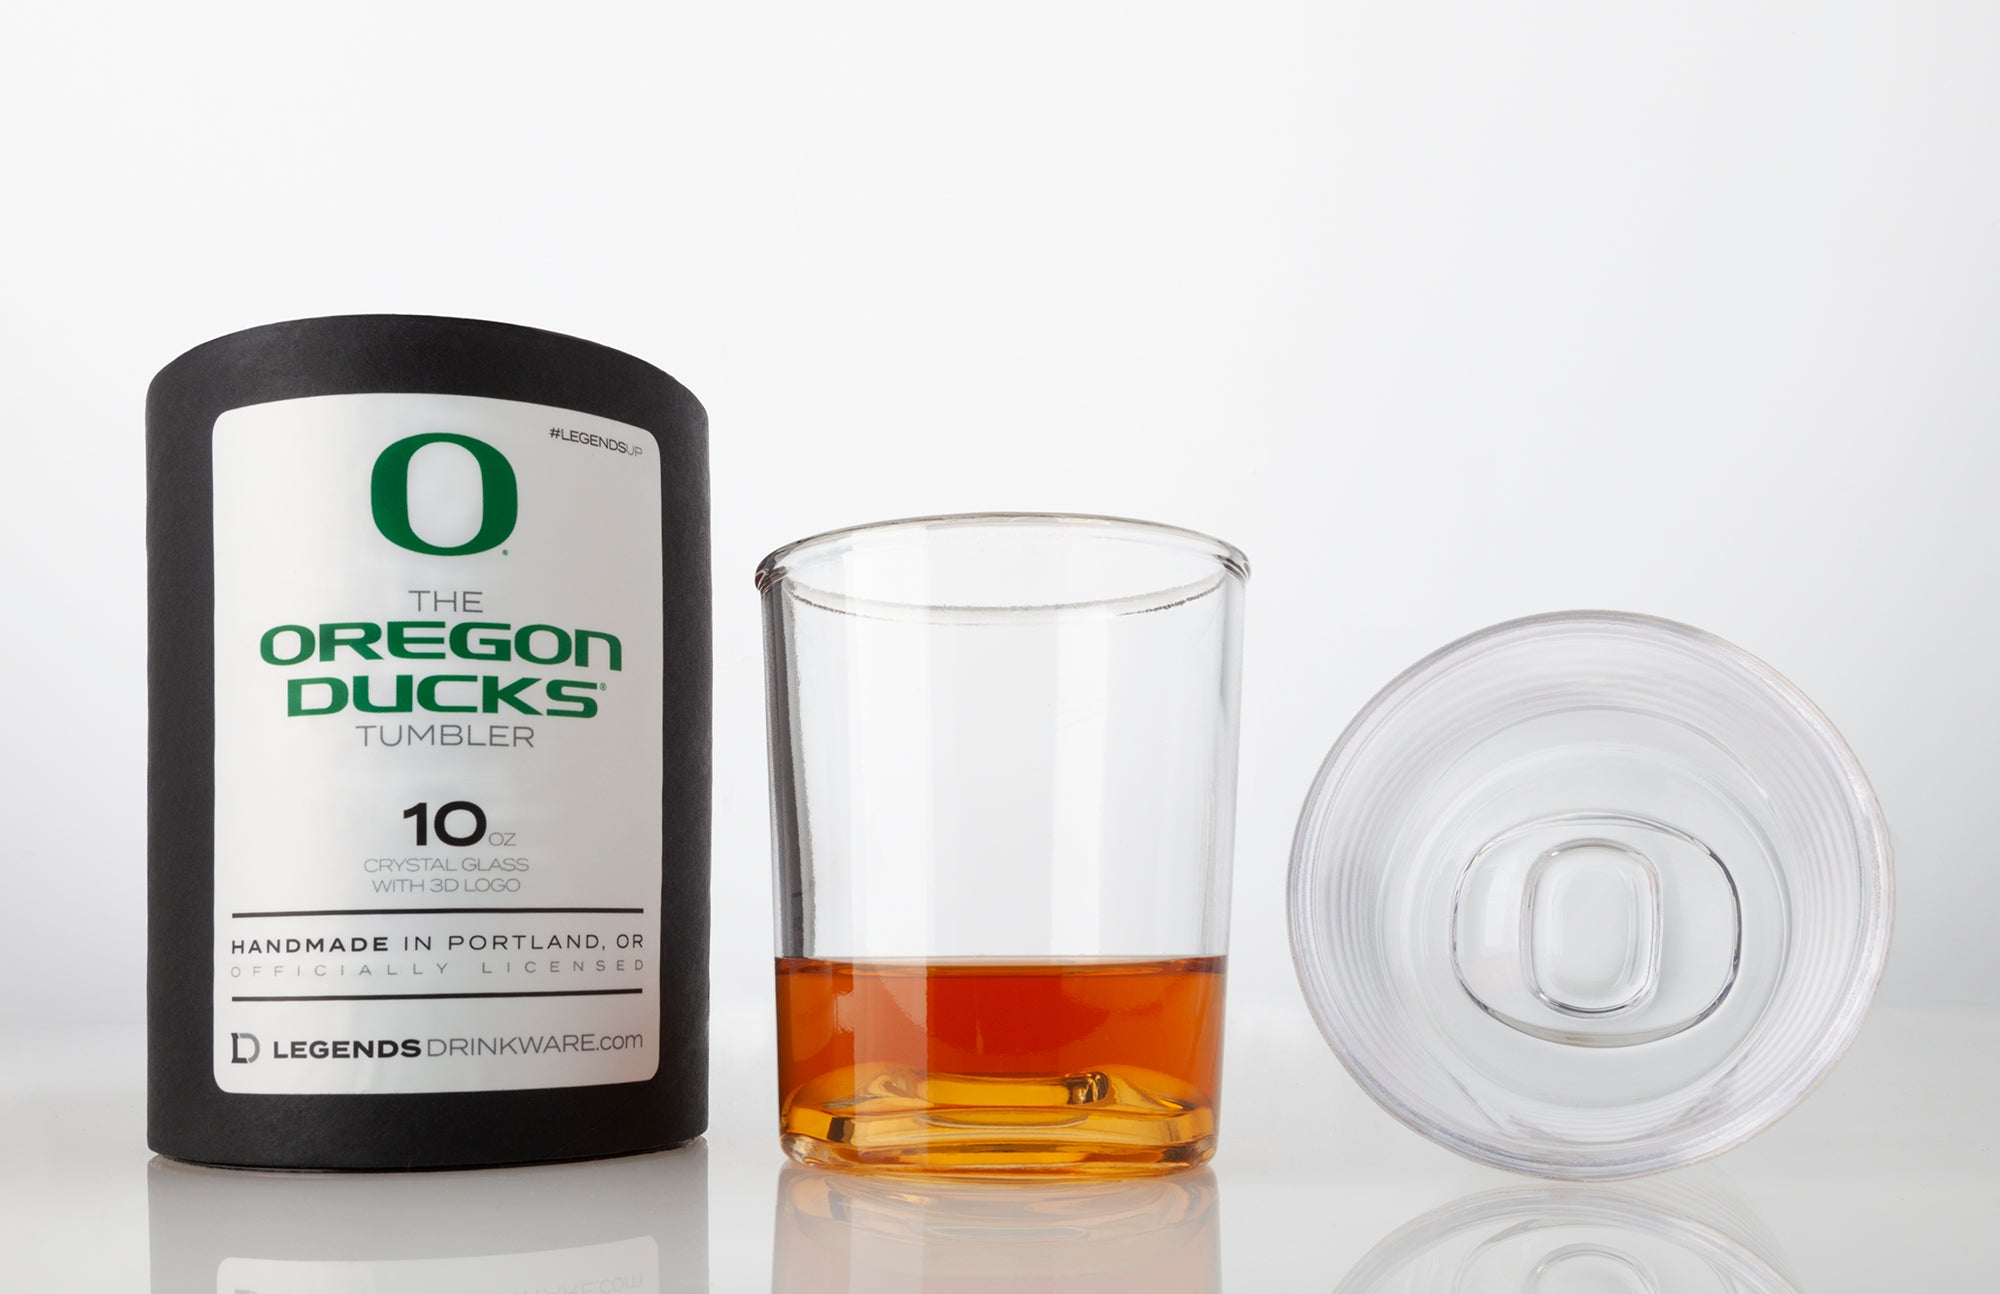 The Oregon Ducks 10 oz Tumbler